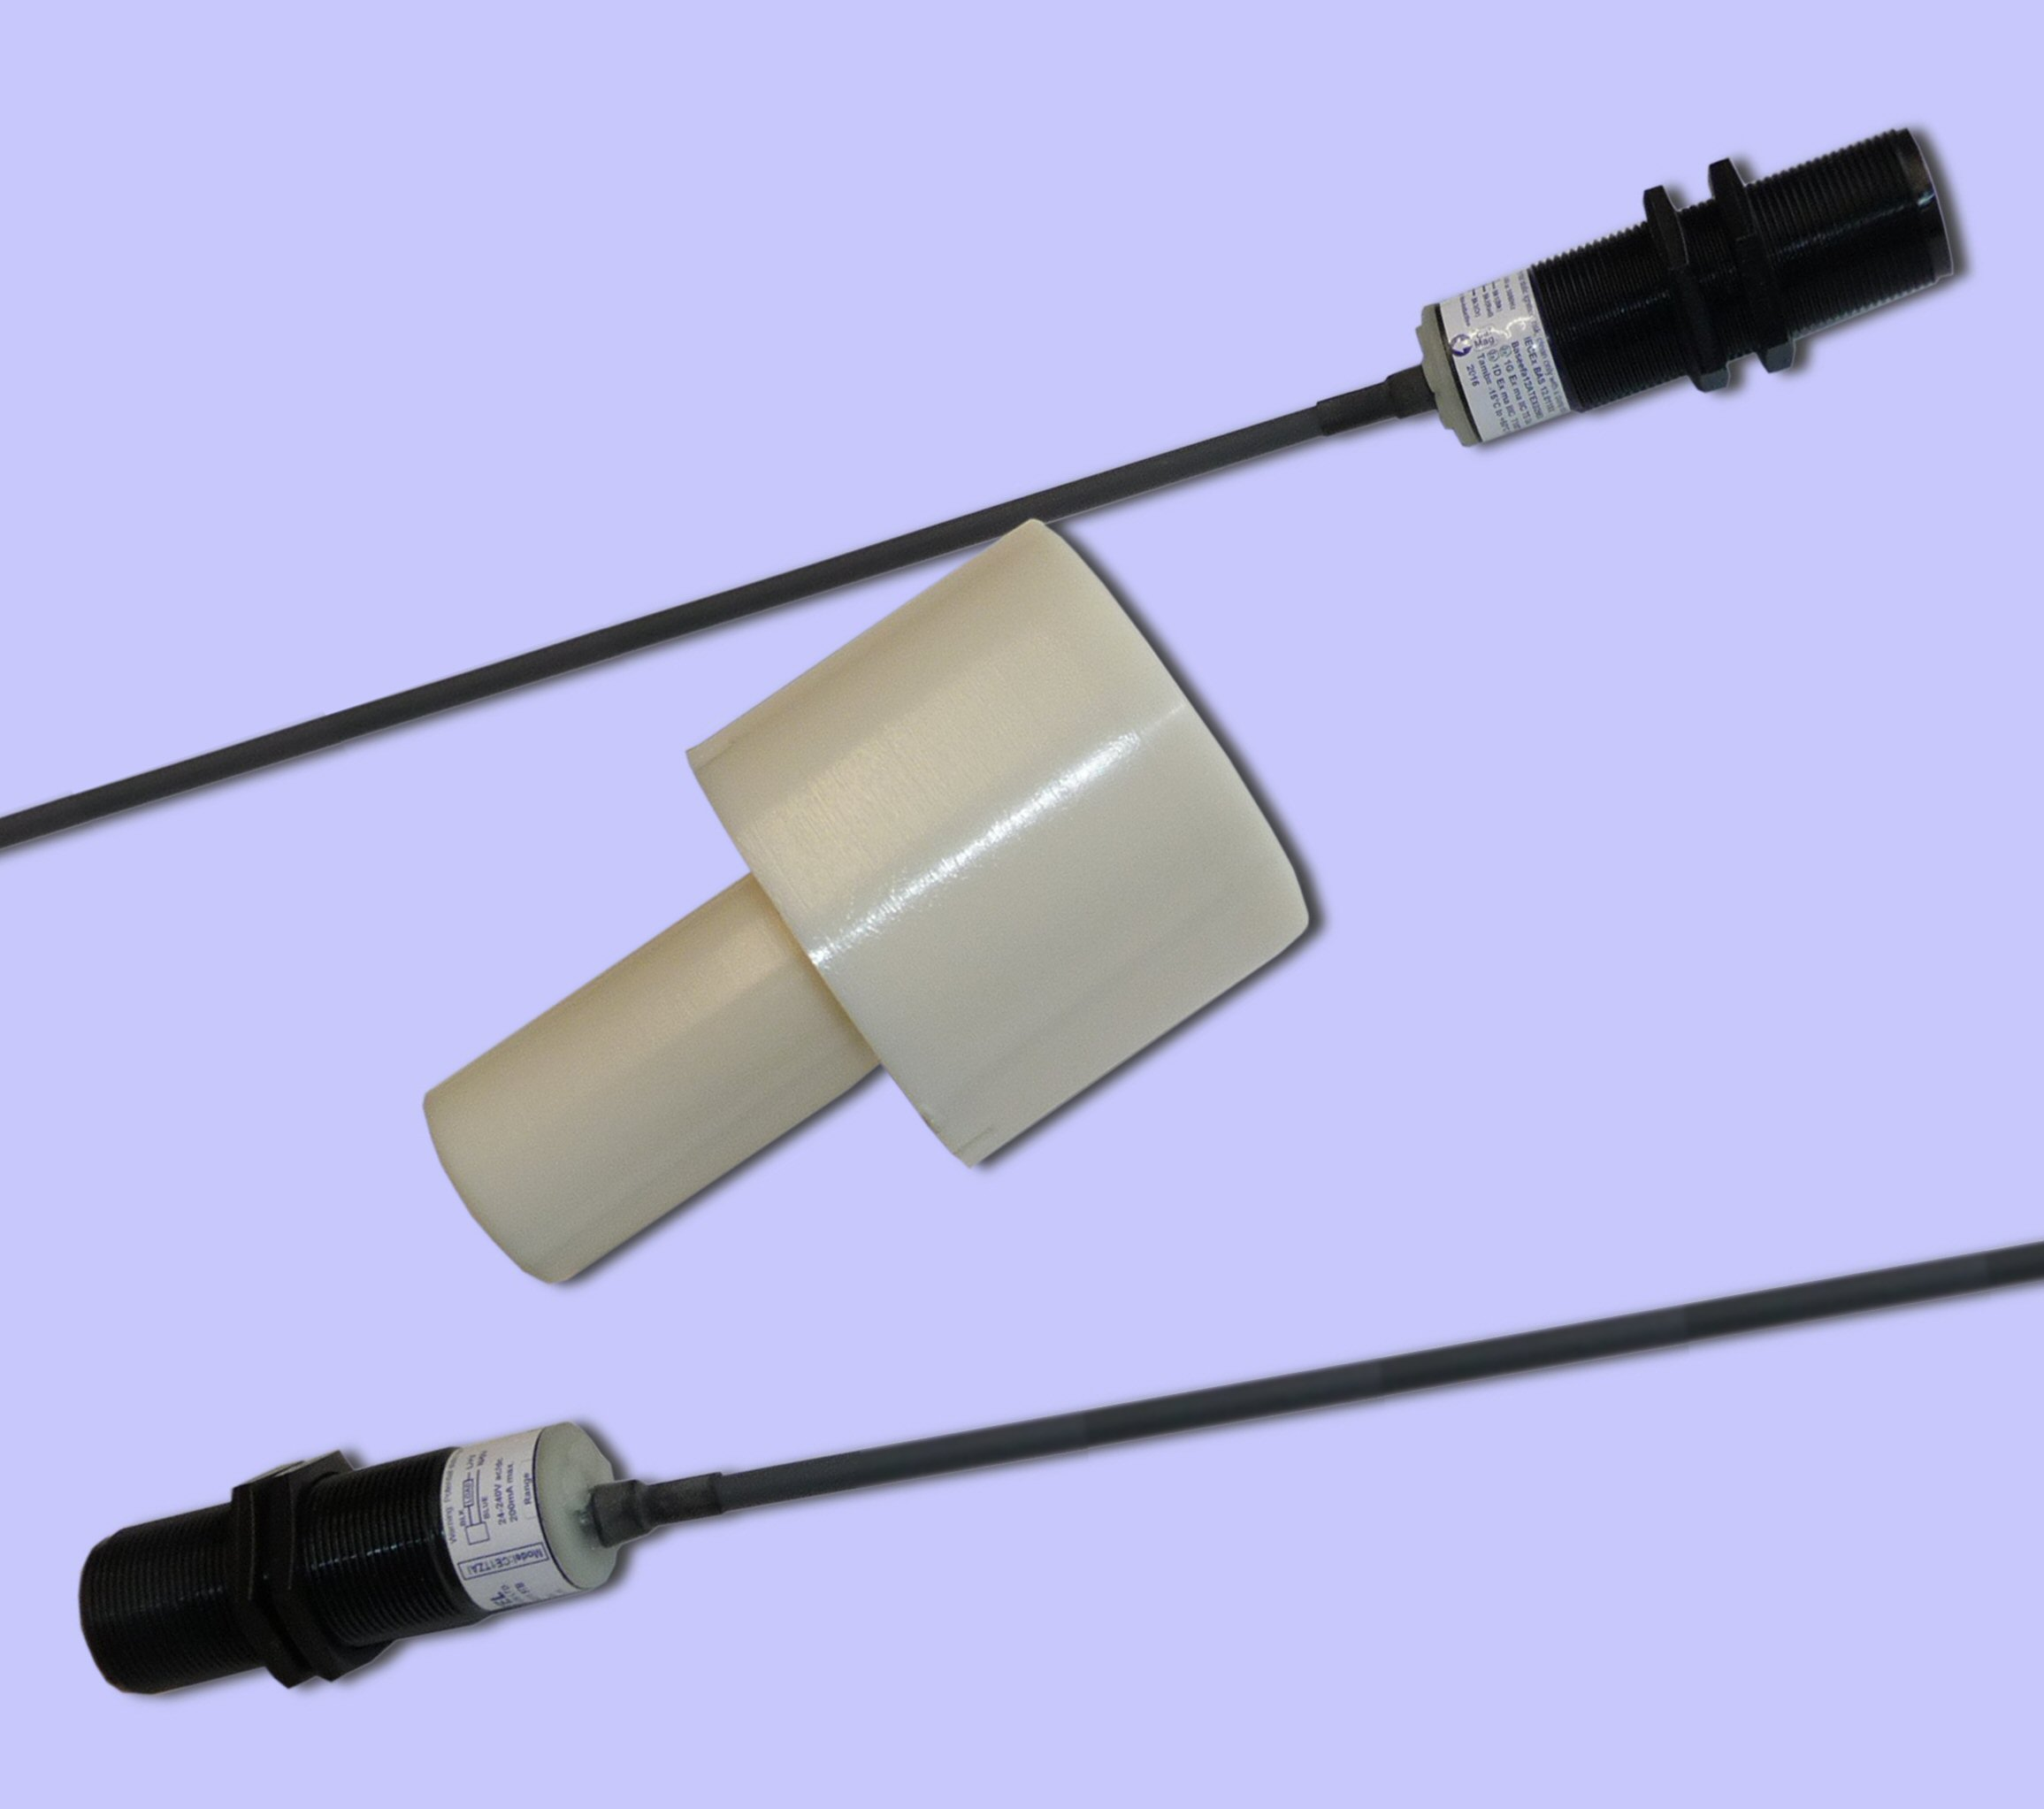 Synatel ATEX IECEx Capacitive Proximity Sensor UK